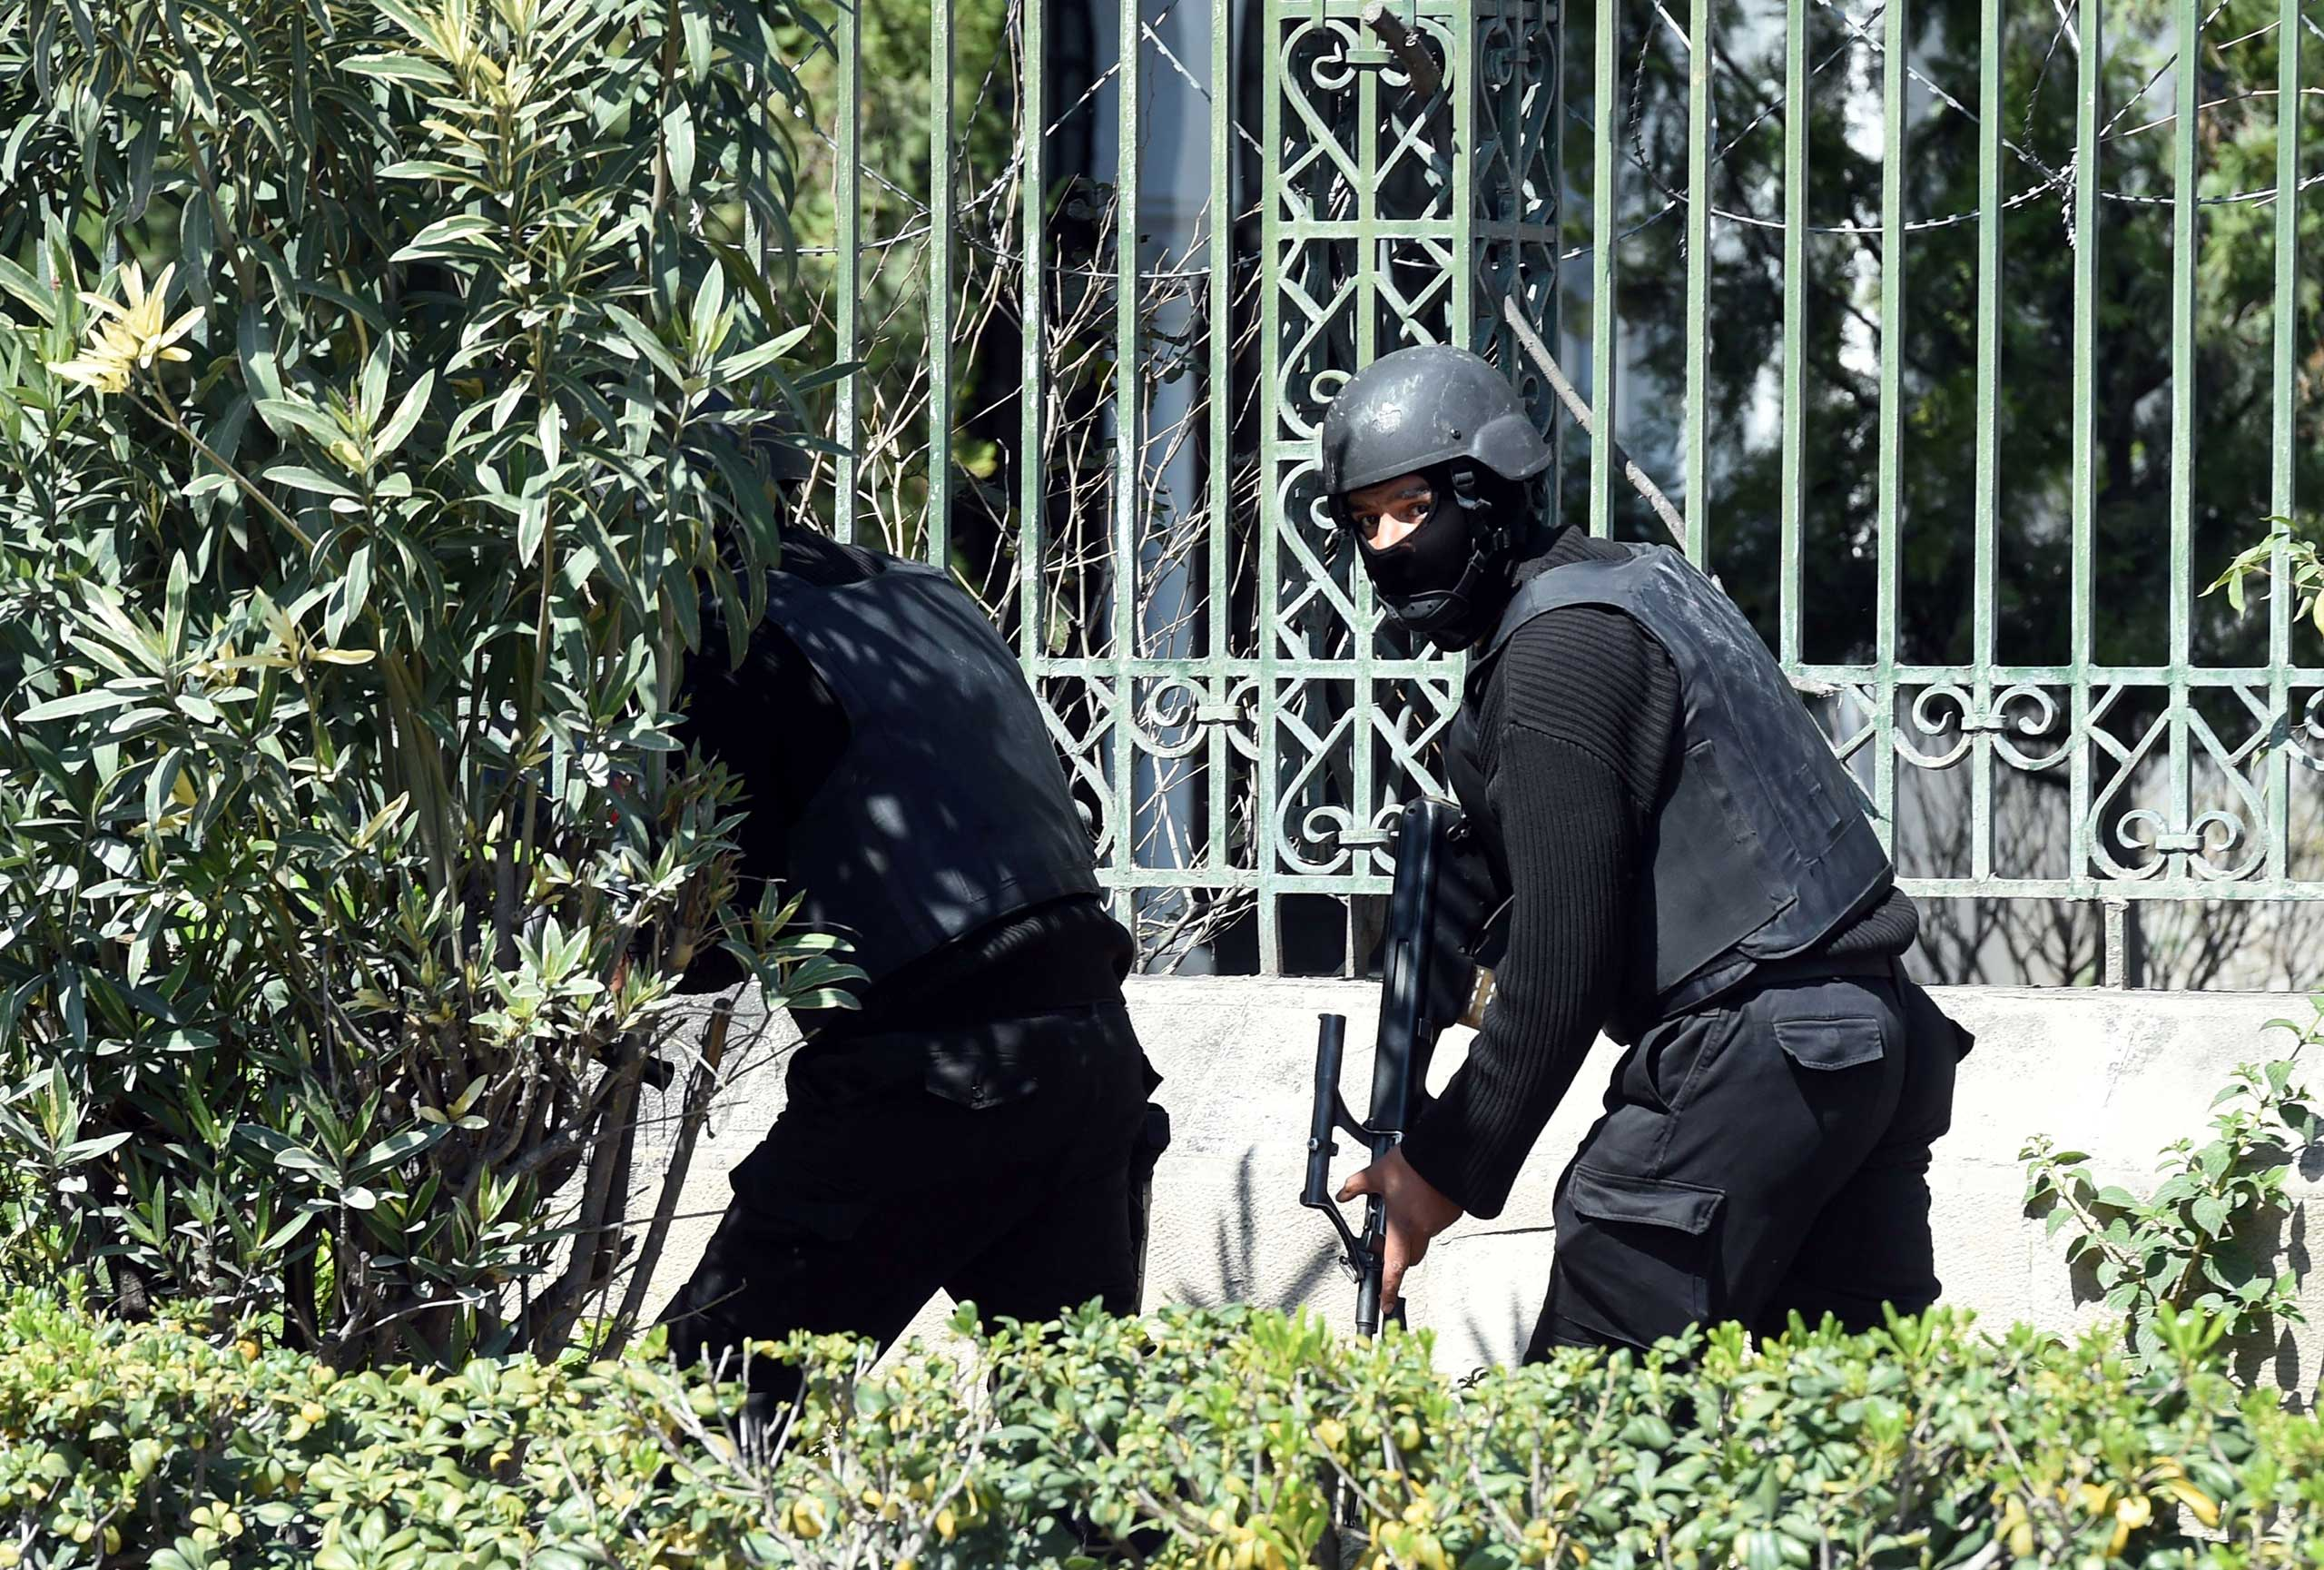 Tunisian security forces secure the area after gunmen attacked the Bardo Museum in Tunis on March 18, 2015.